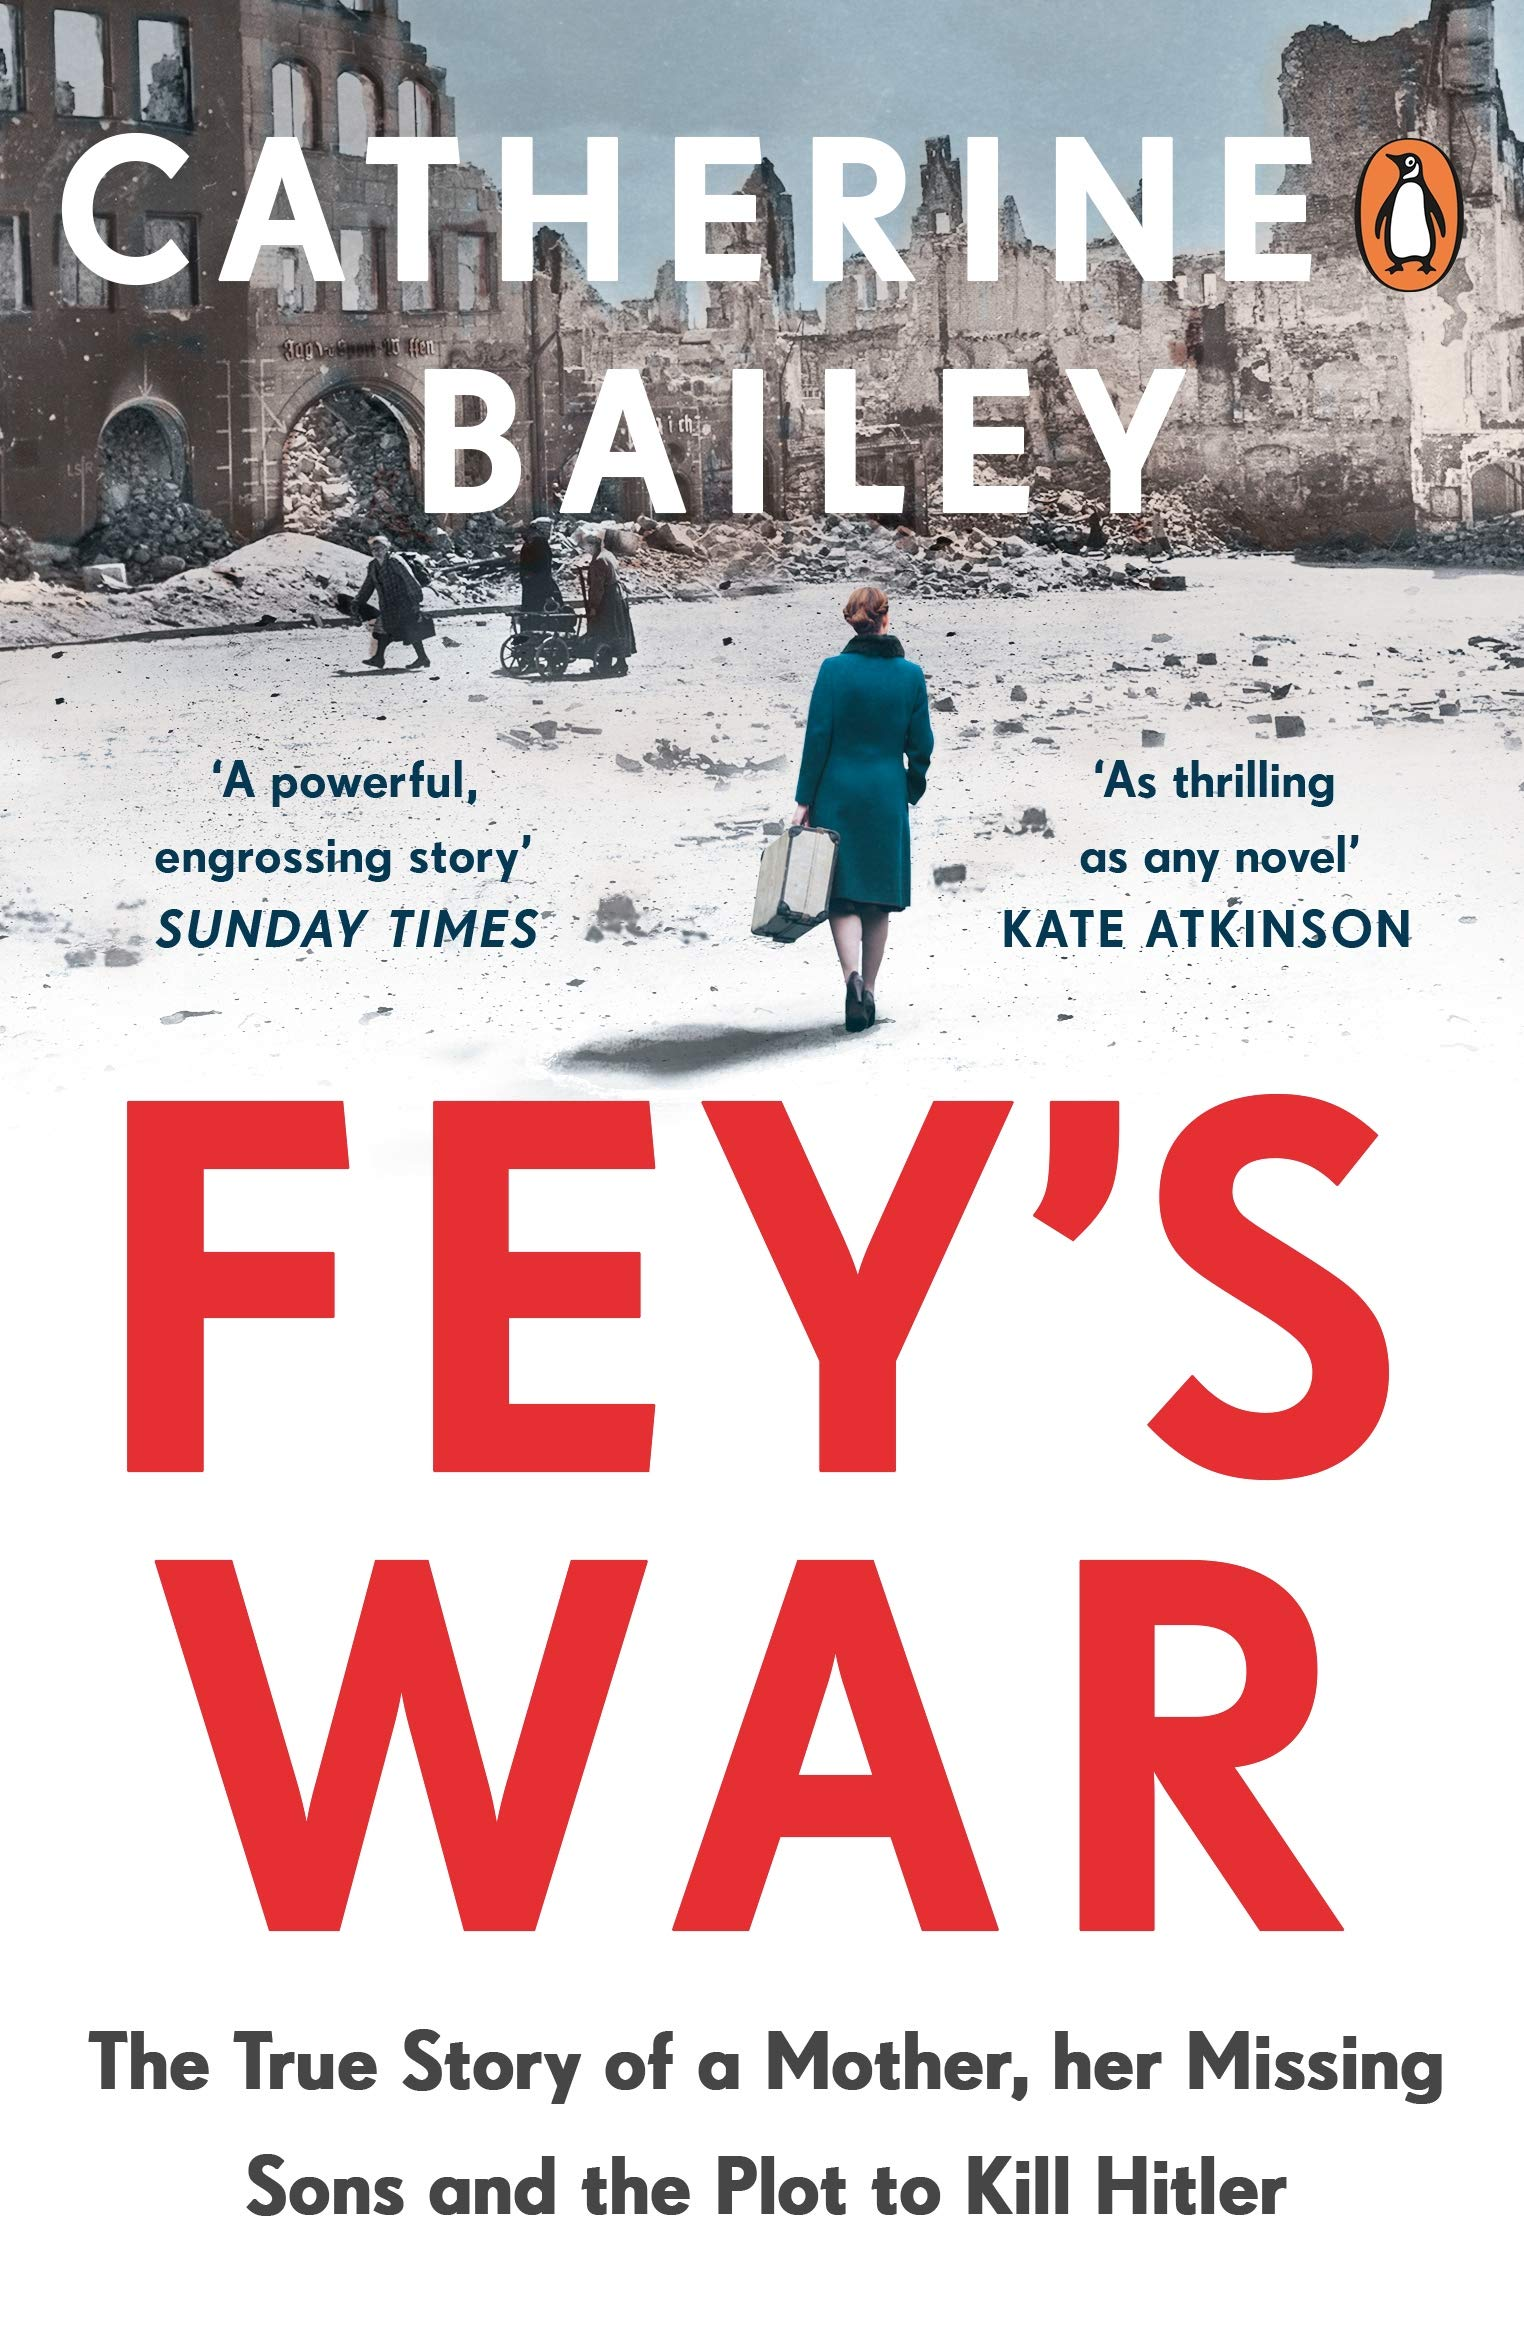 Fey's War: The True Story of a Mother, her Missing Sons and the Plot to Kill Hitler